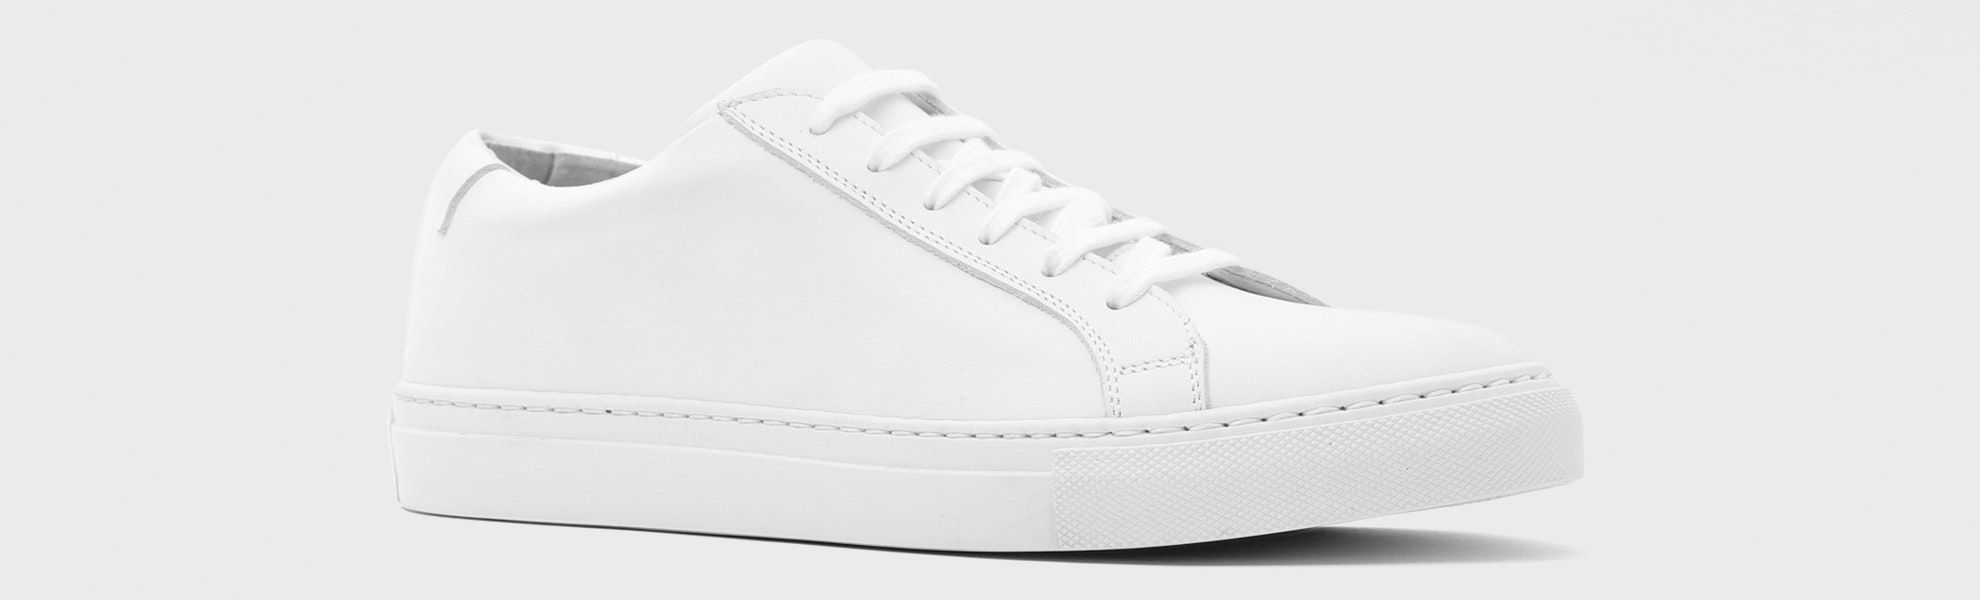 Massdrop Puro White Low-Top Sneaker